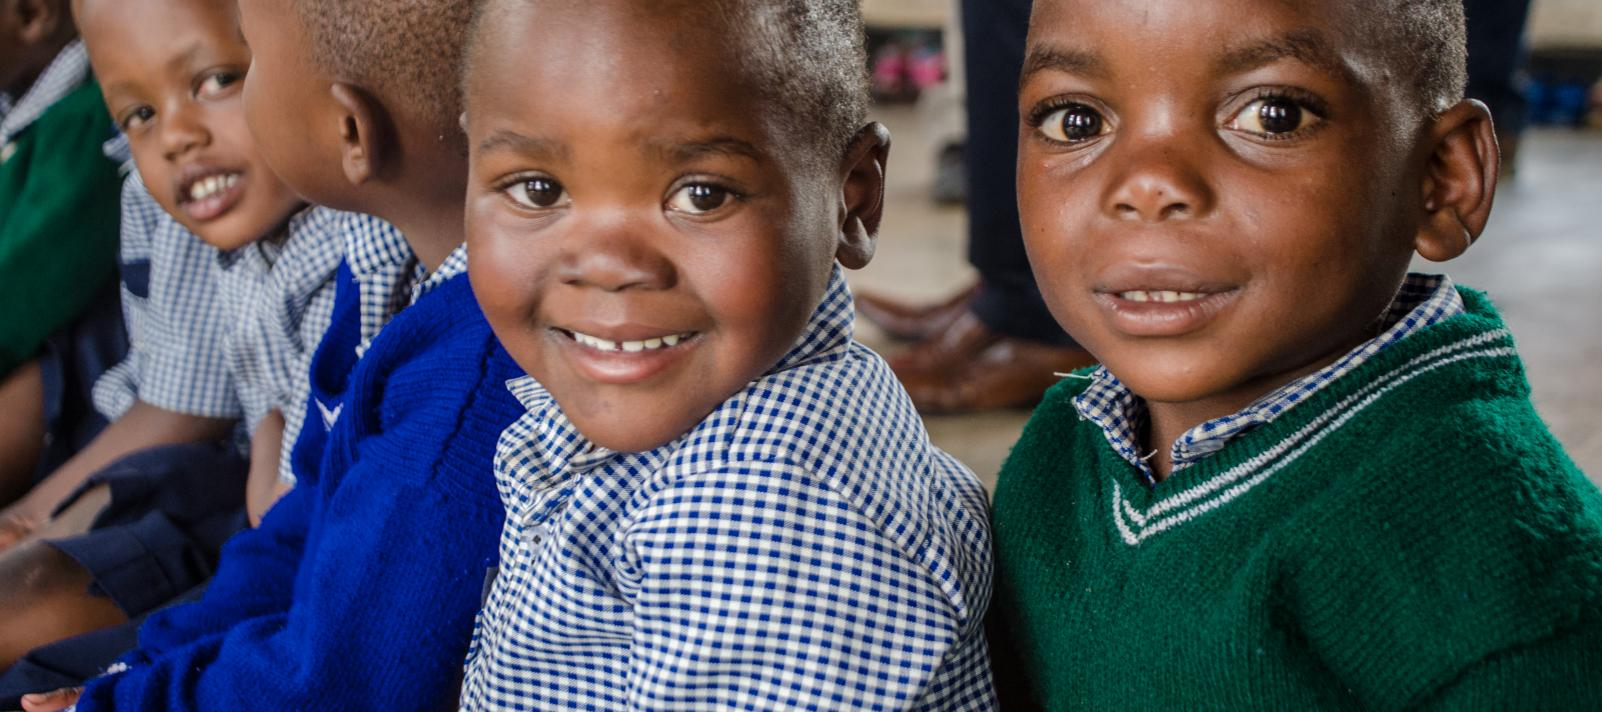 Three young children smile together in a pre-primary school